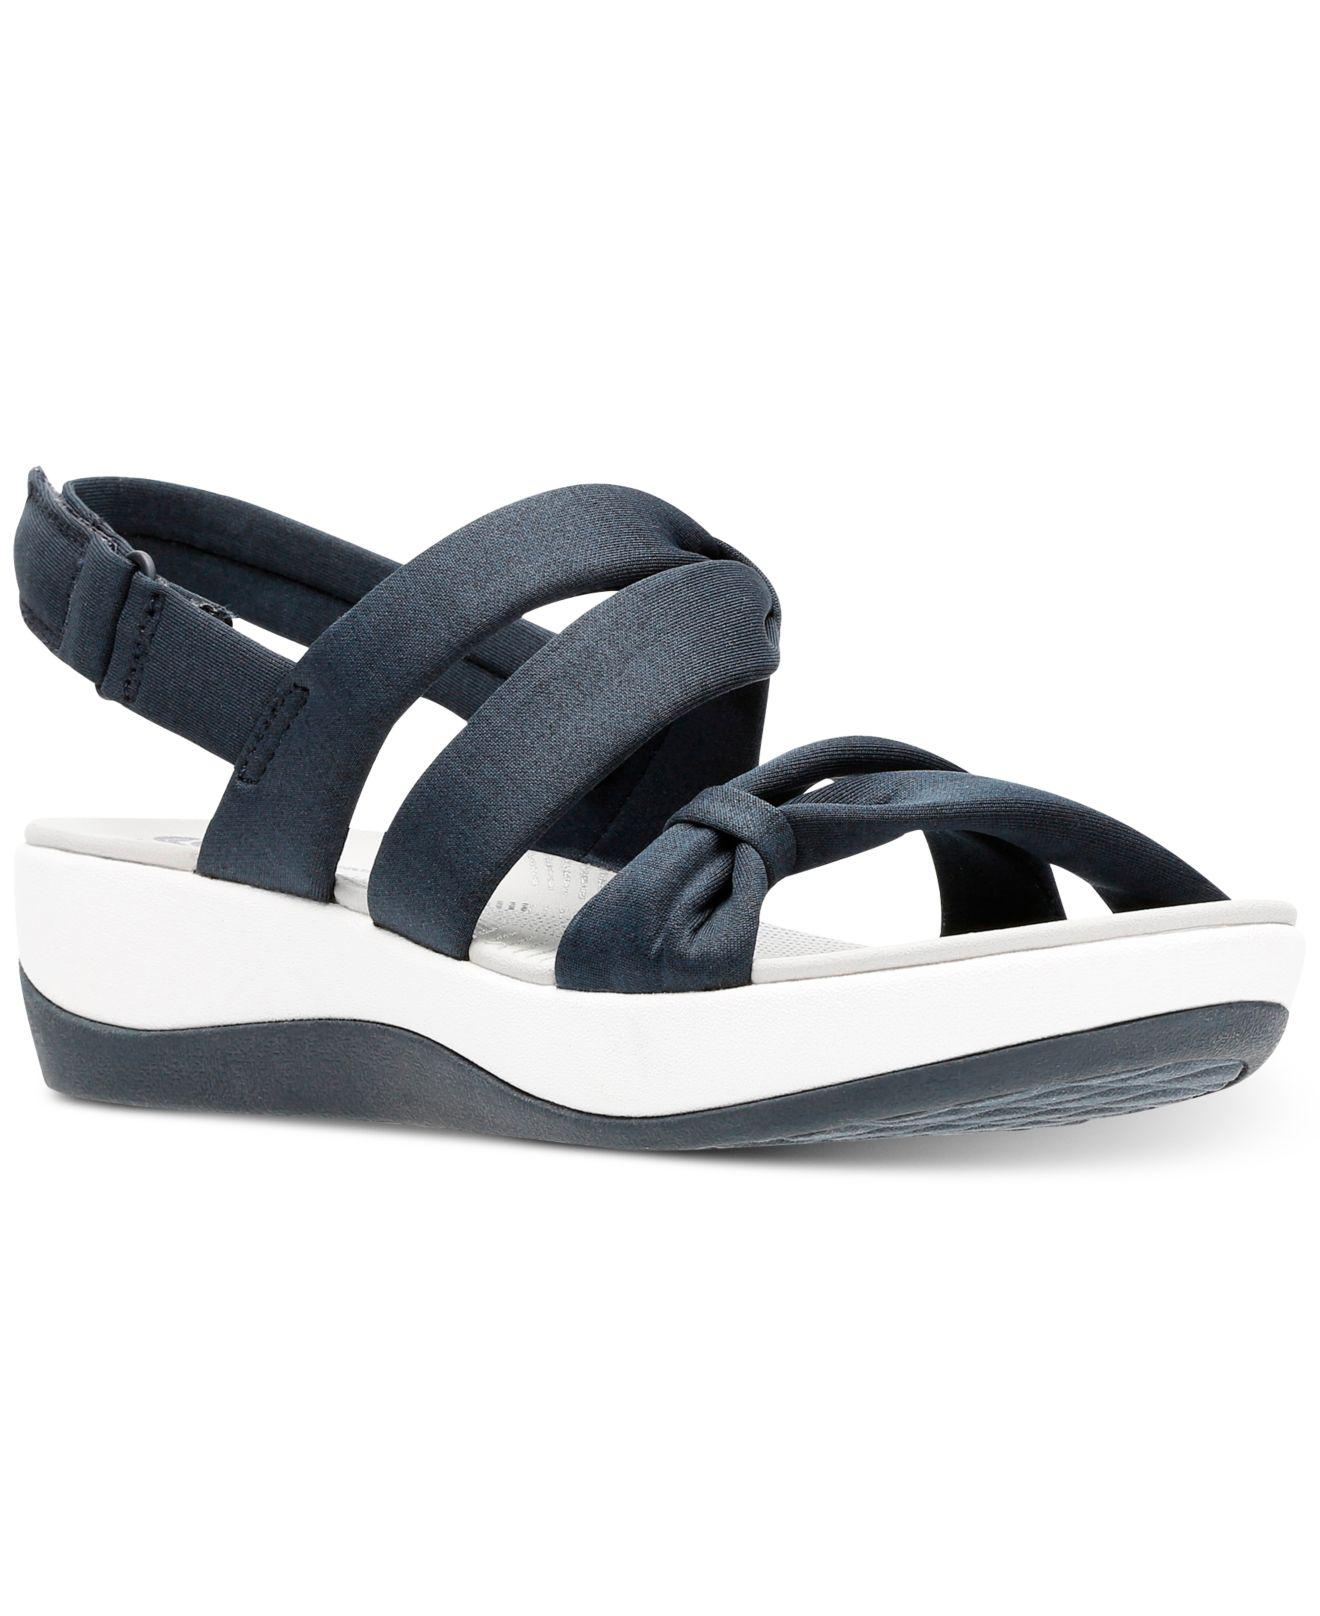 9d287862740 Lyst - Clarks Cloudsteppers Arla Mae Wedge Sandals in Blue